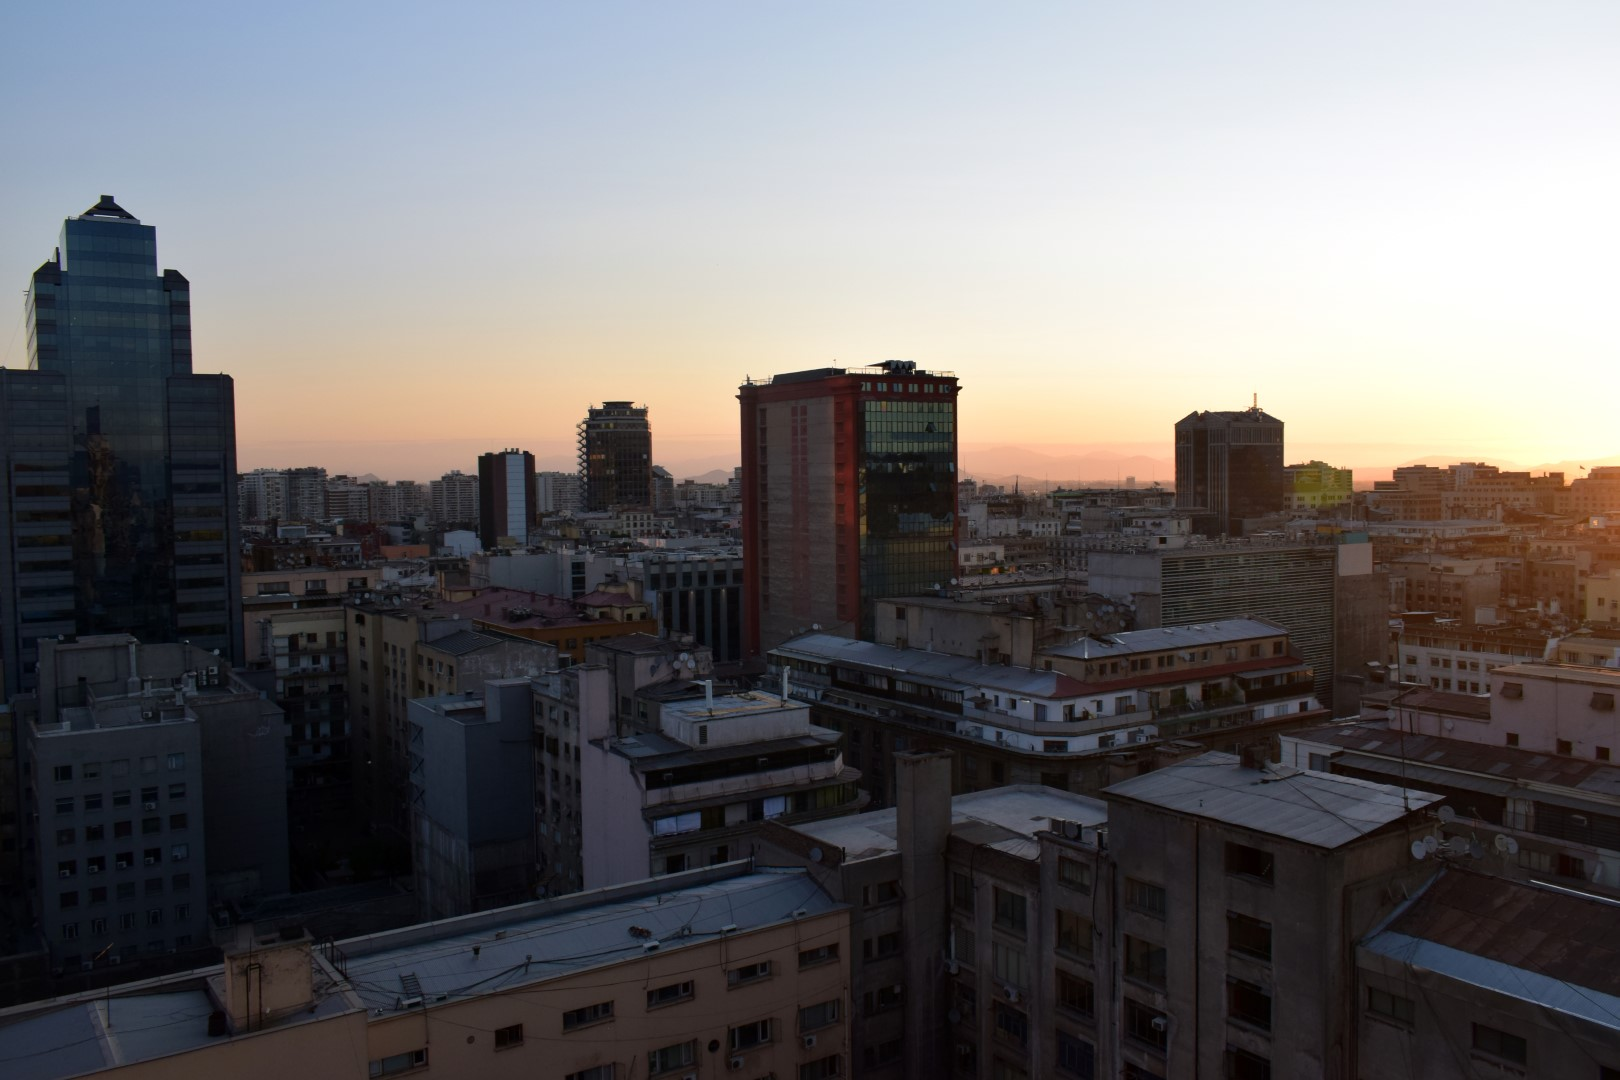 Santiago from our apartment building, Calle Monjitas